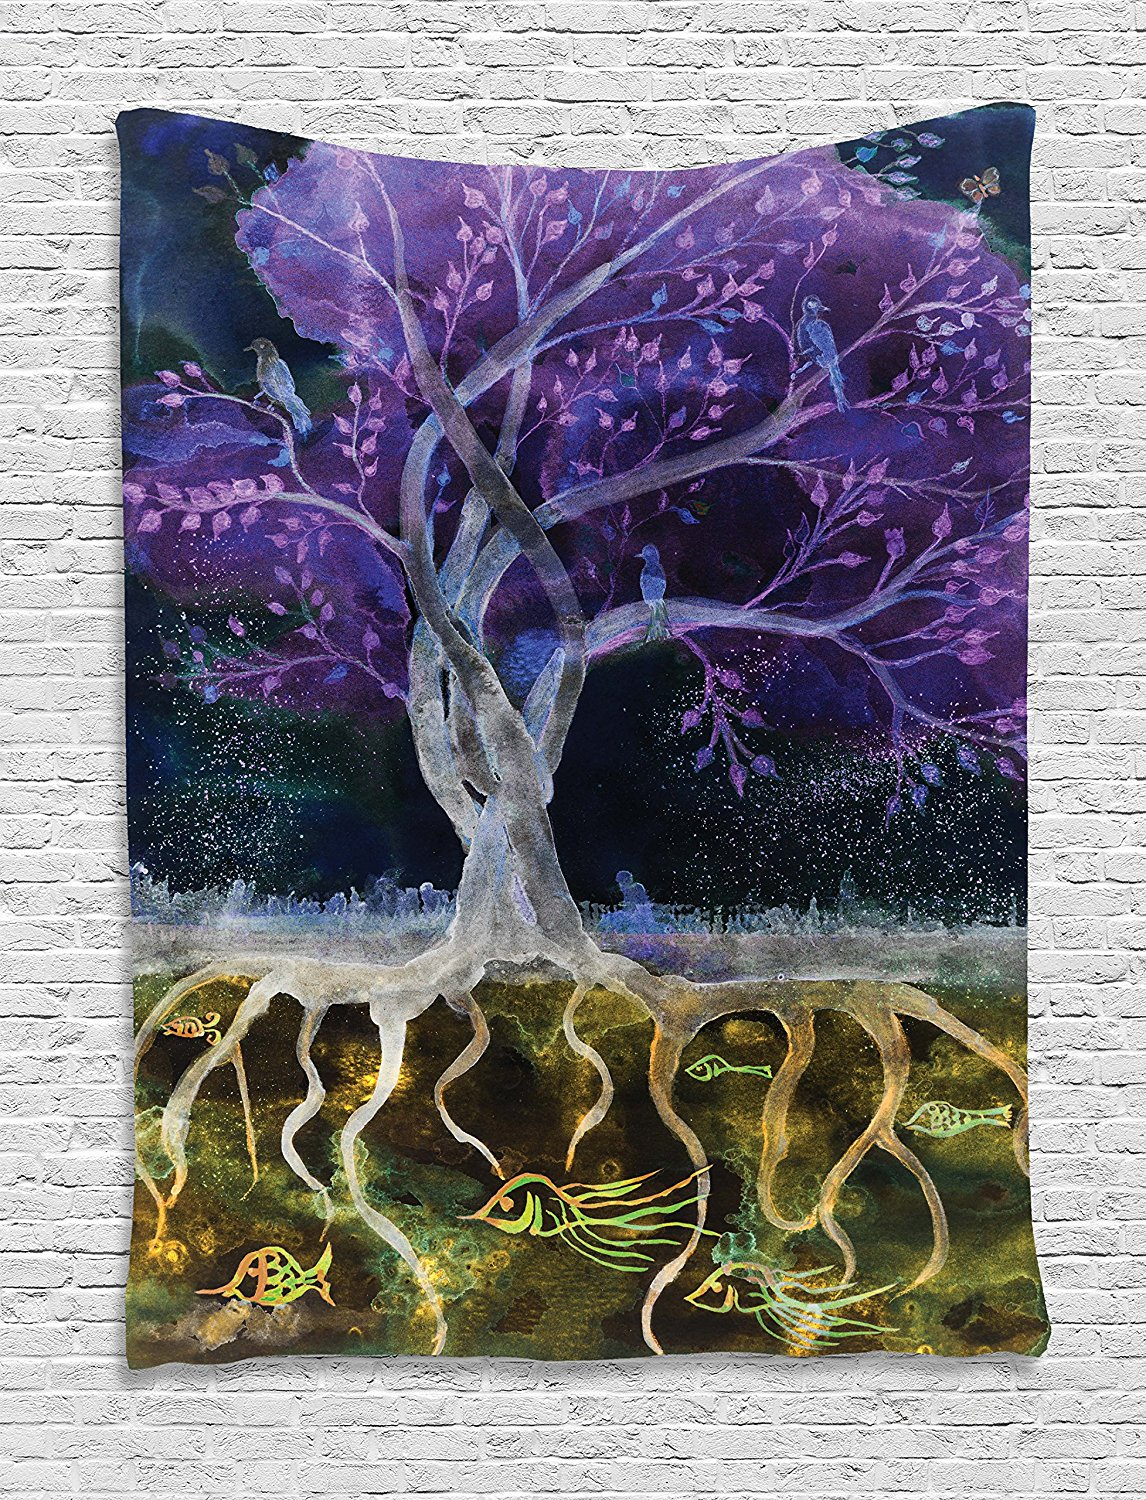 Tapestry Decor, Psychedelic Magical Mysterious Tree at Night with Birds and Fishes and Birds Life Theme, Wall Hanging Tapestry